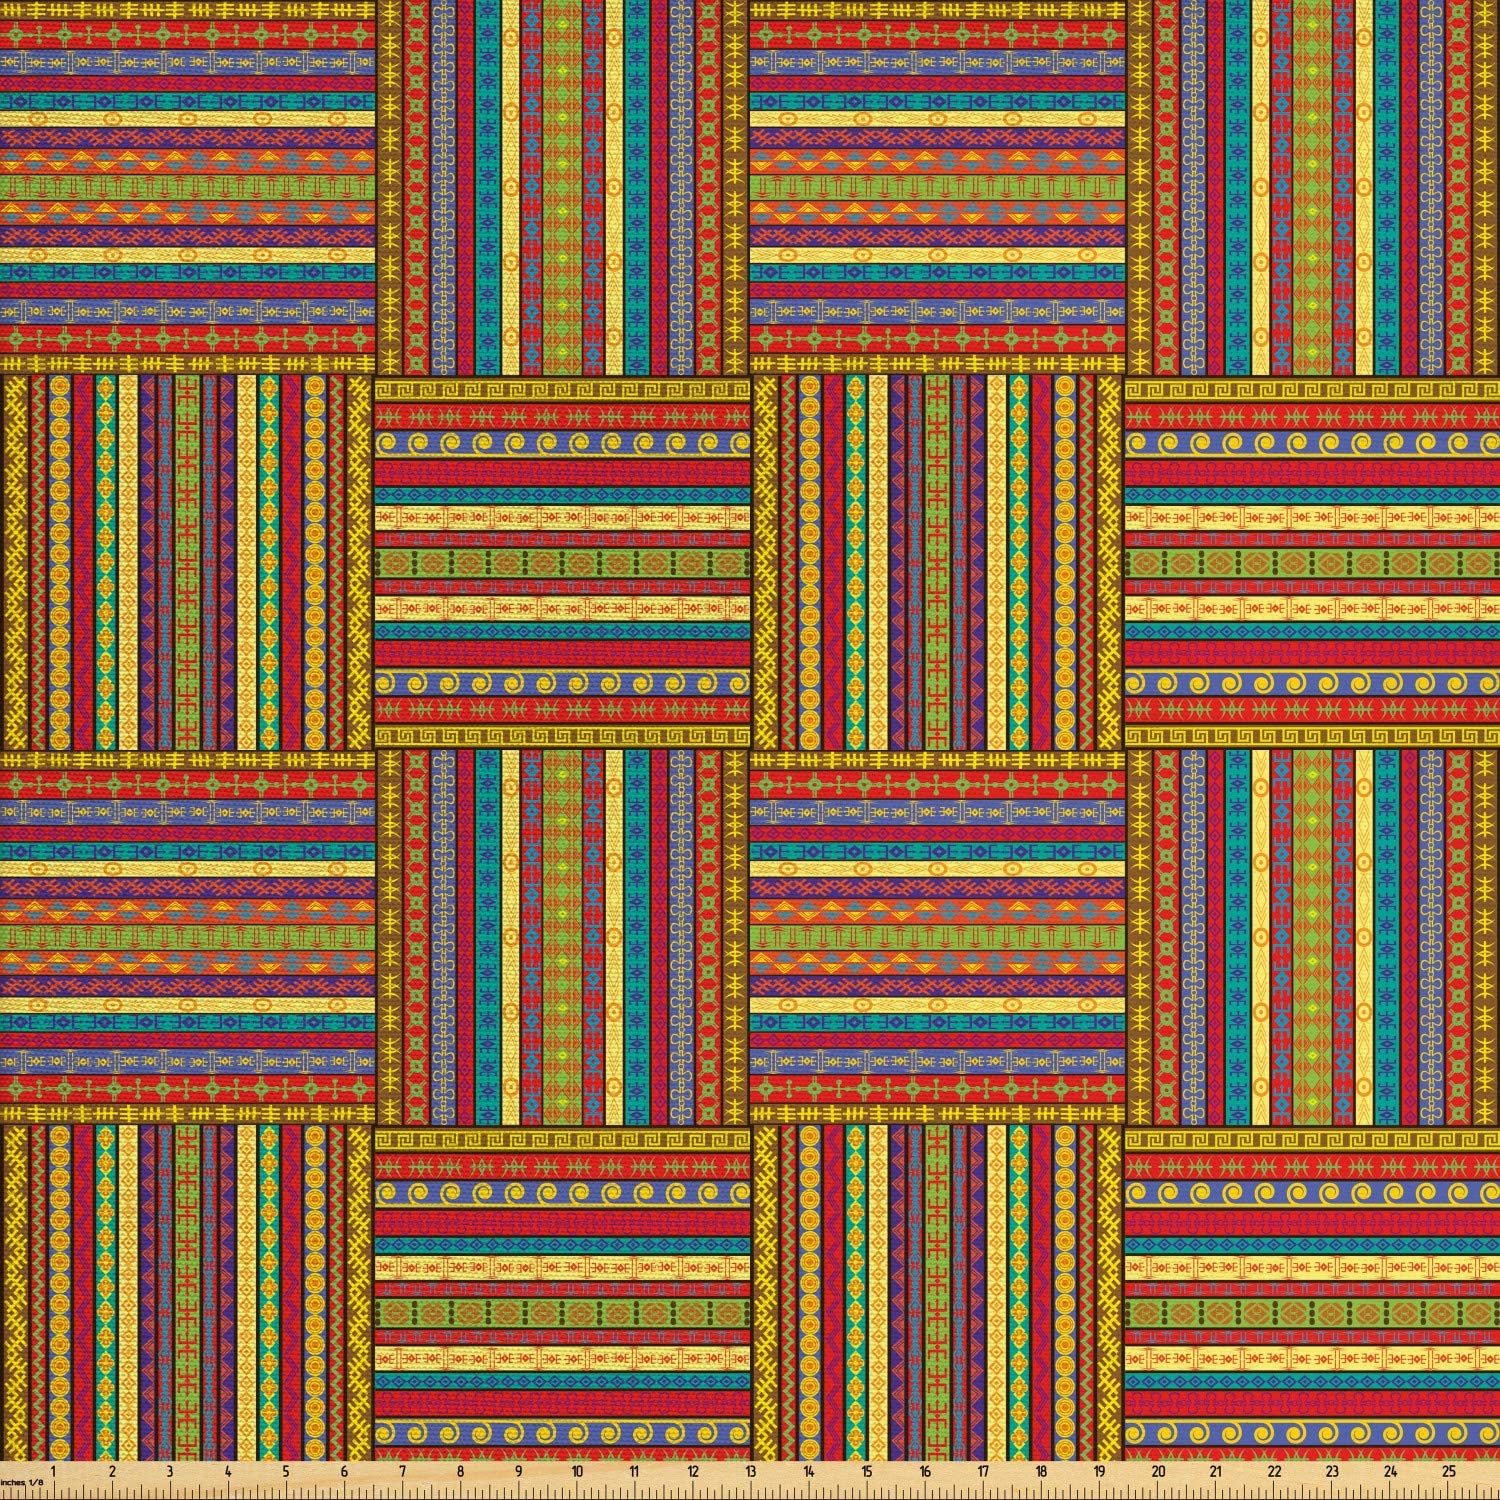 Ambesonne African Fabric by The Yard, Borders Pattern Old Fashioned Culture Theme Colorful Print, Decorative Fabric for Upholstery and Home Accents, 3 Yards, Yellow Red